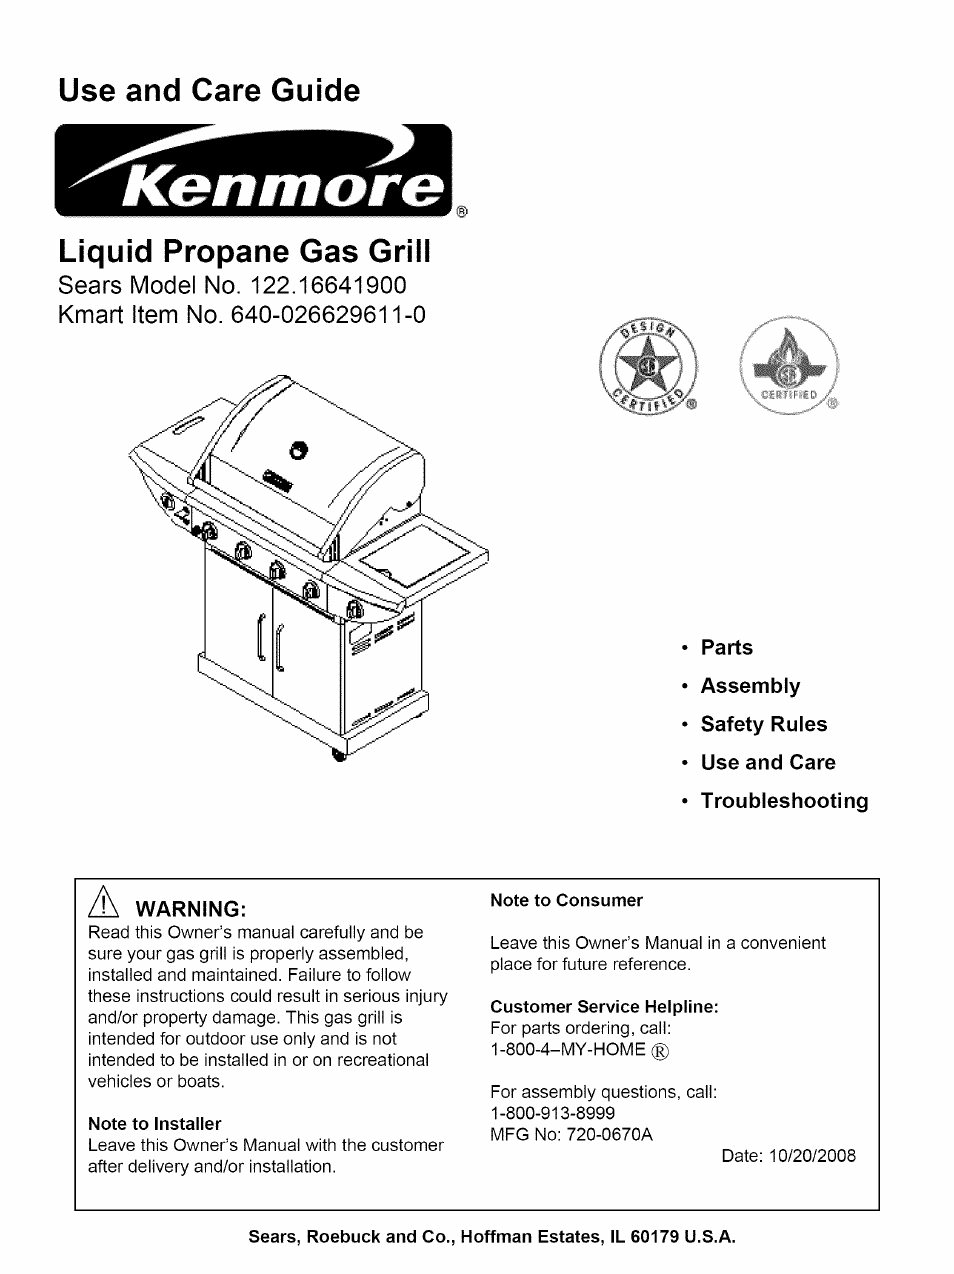 kenmore 122 16641900 user manual 19 pages rh manualsdir com Kenmore Gas Range Kenmore Elite Washer